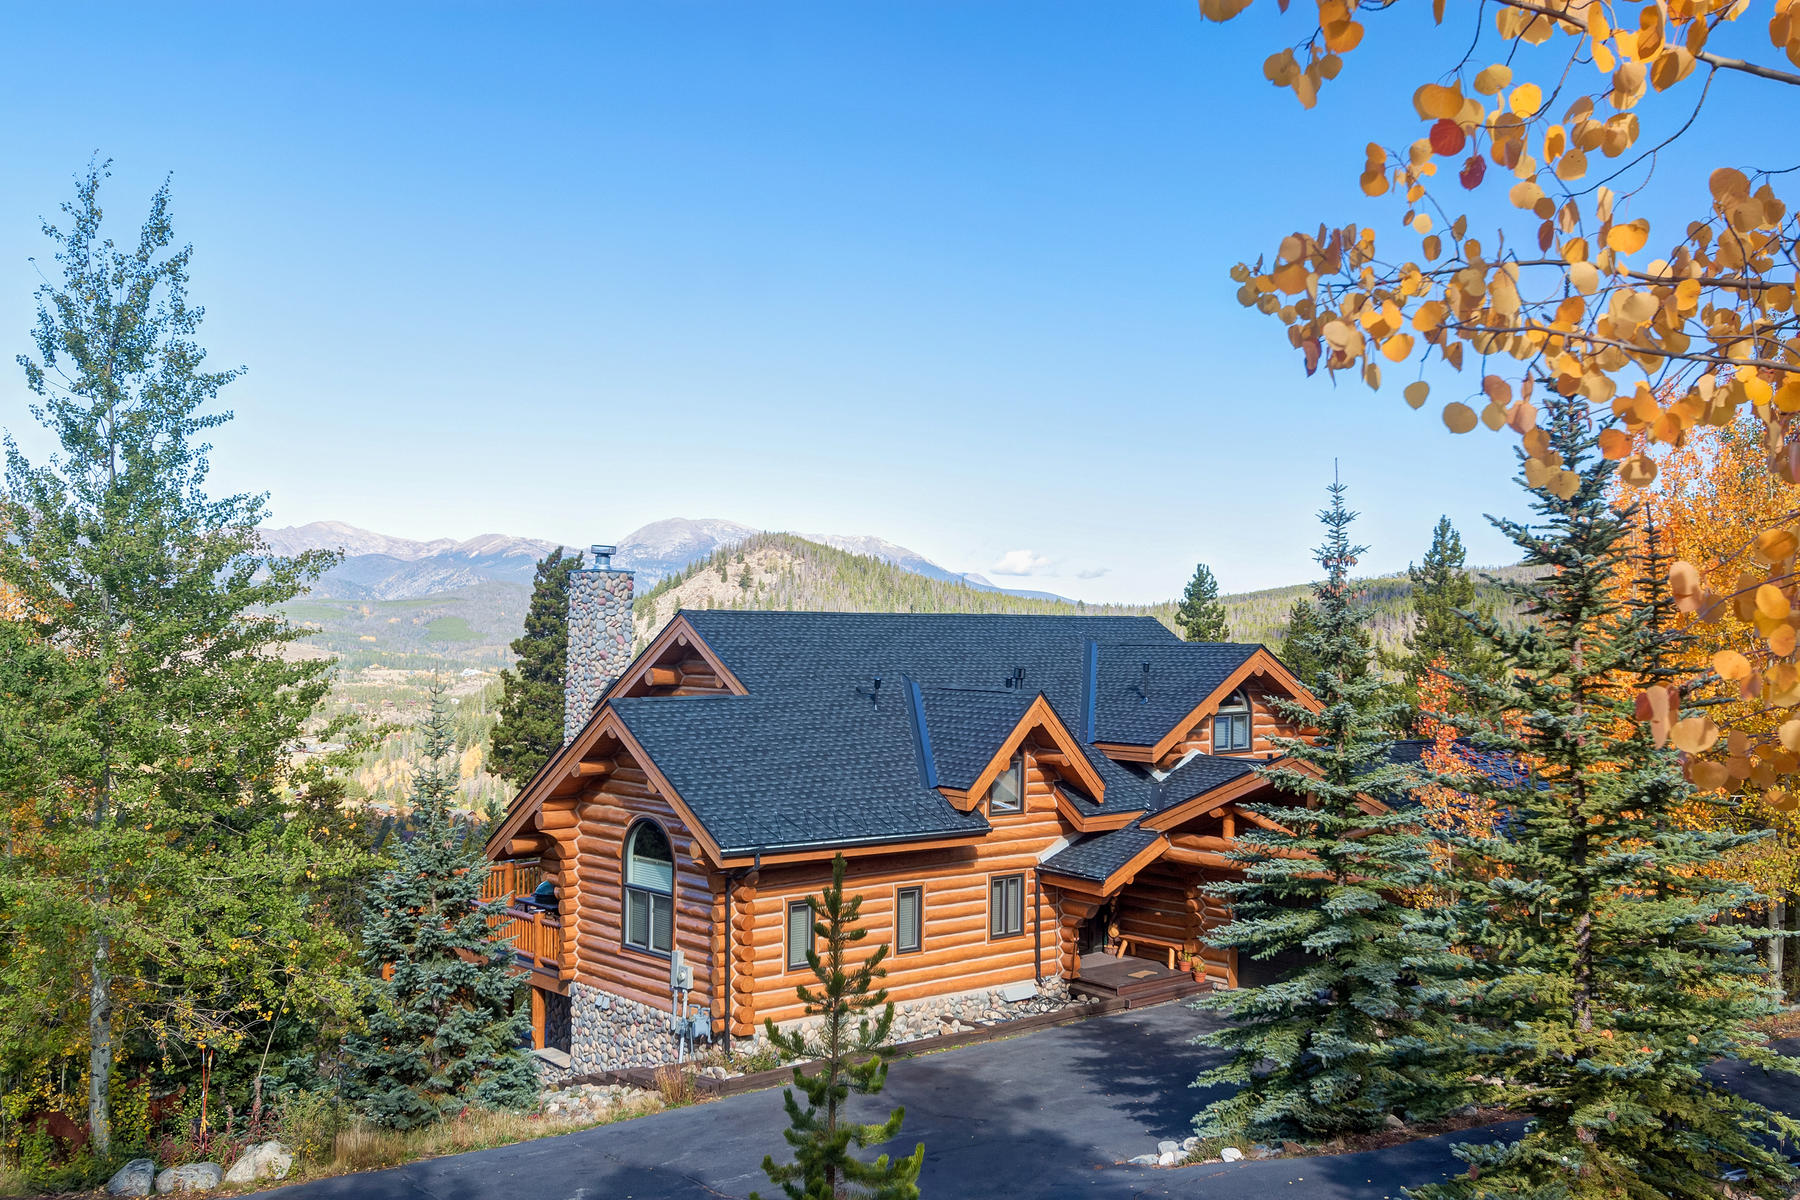 Single Family Home for Active at Summit Estates Log Home 1598 Estates Drive Breckenridge, Colorado 80424 United States